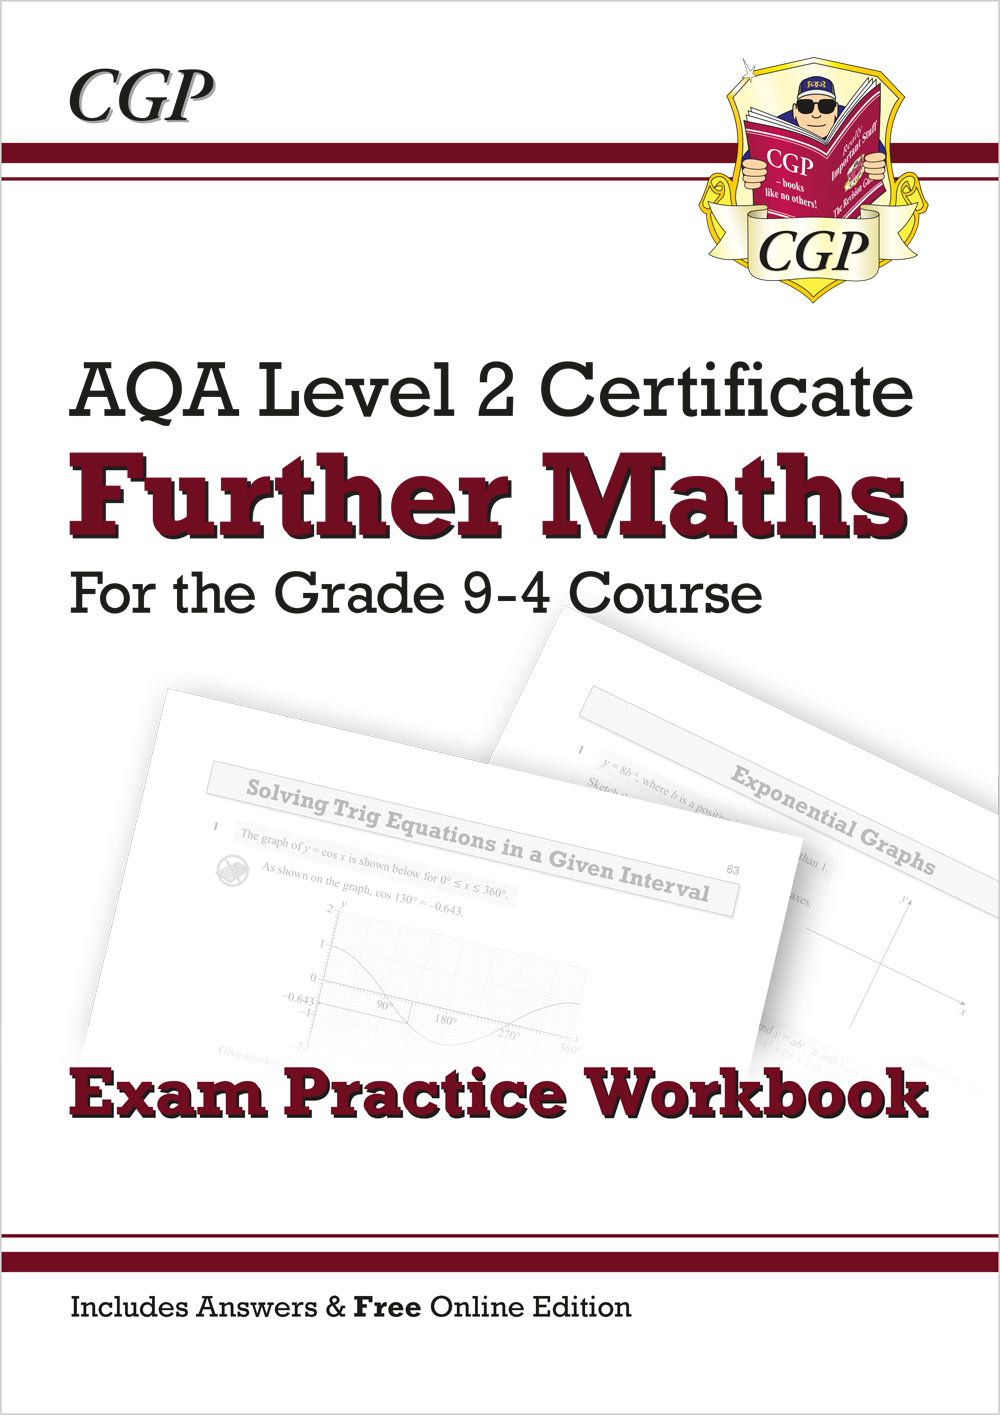 MAQI42 - Grade 9-4 AQA Level 2 Certificate: Further Maths - Exam Practice Workbook (with Ans & Onlin